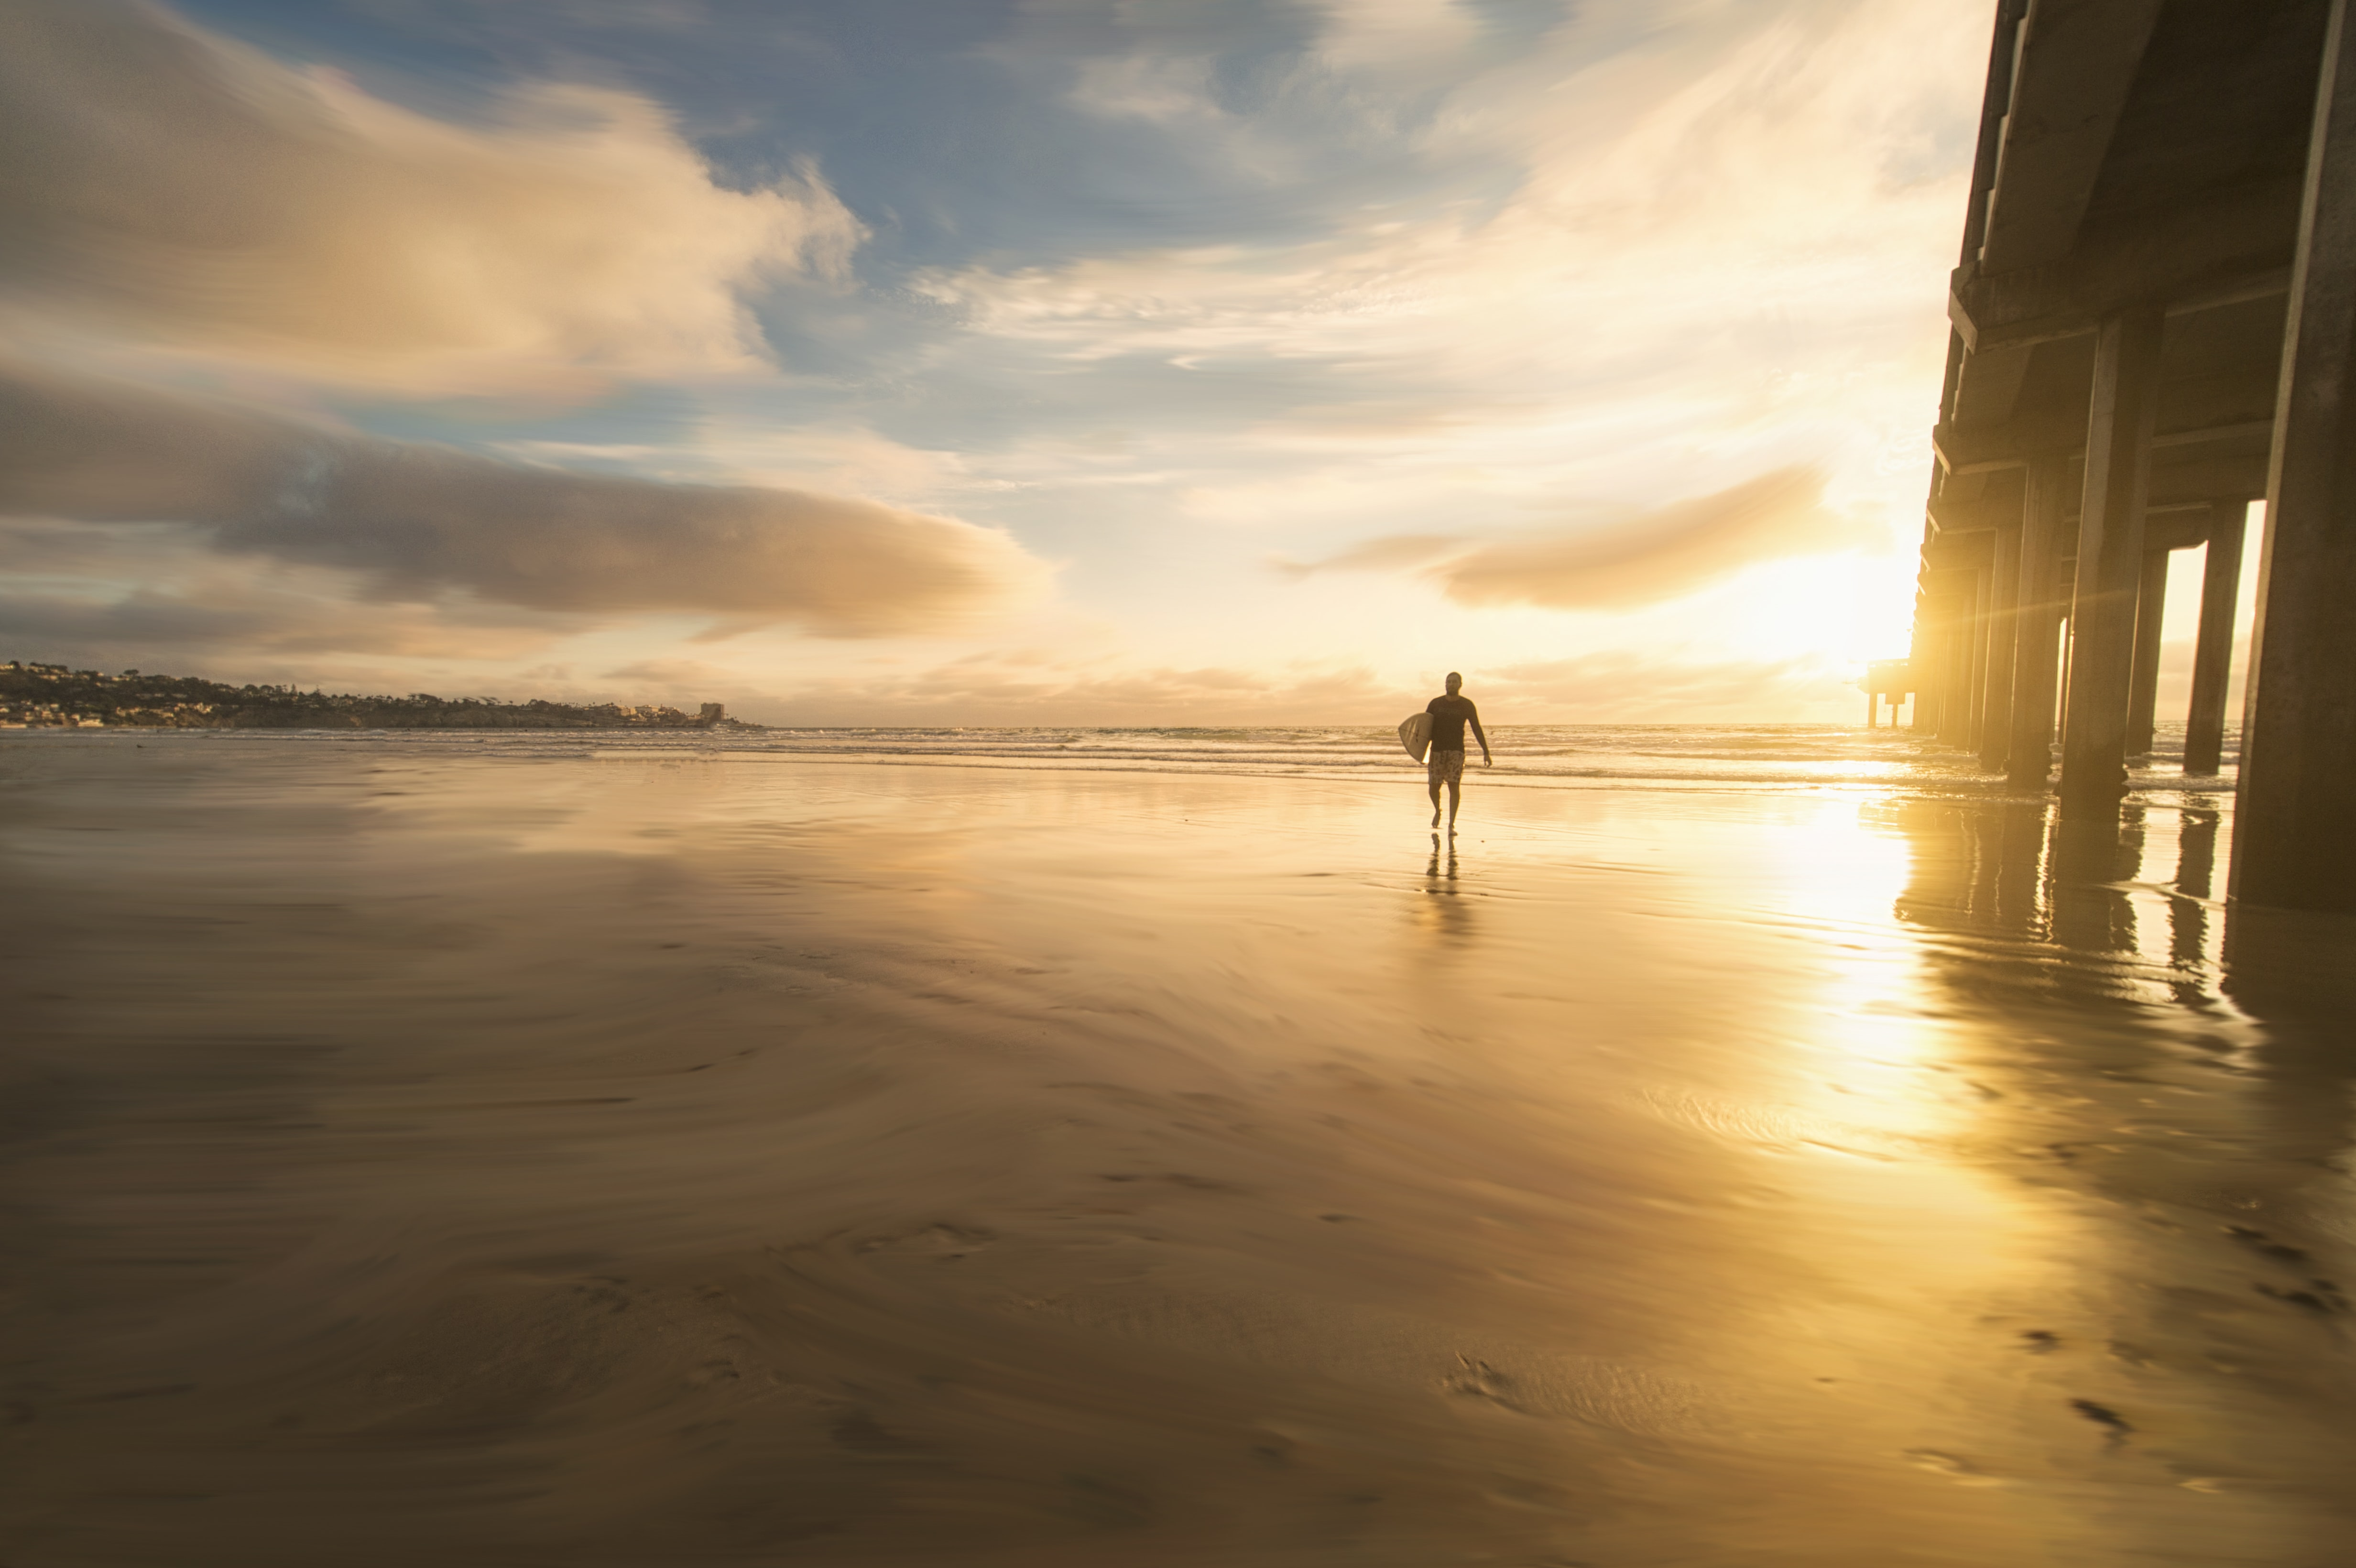 Surfer walking away from ocean holding board during sunset in San Diego